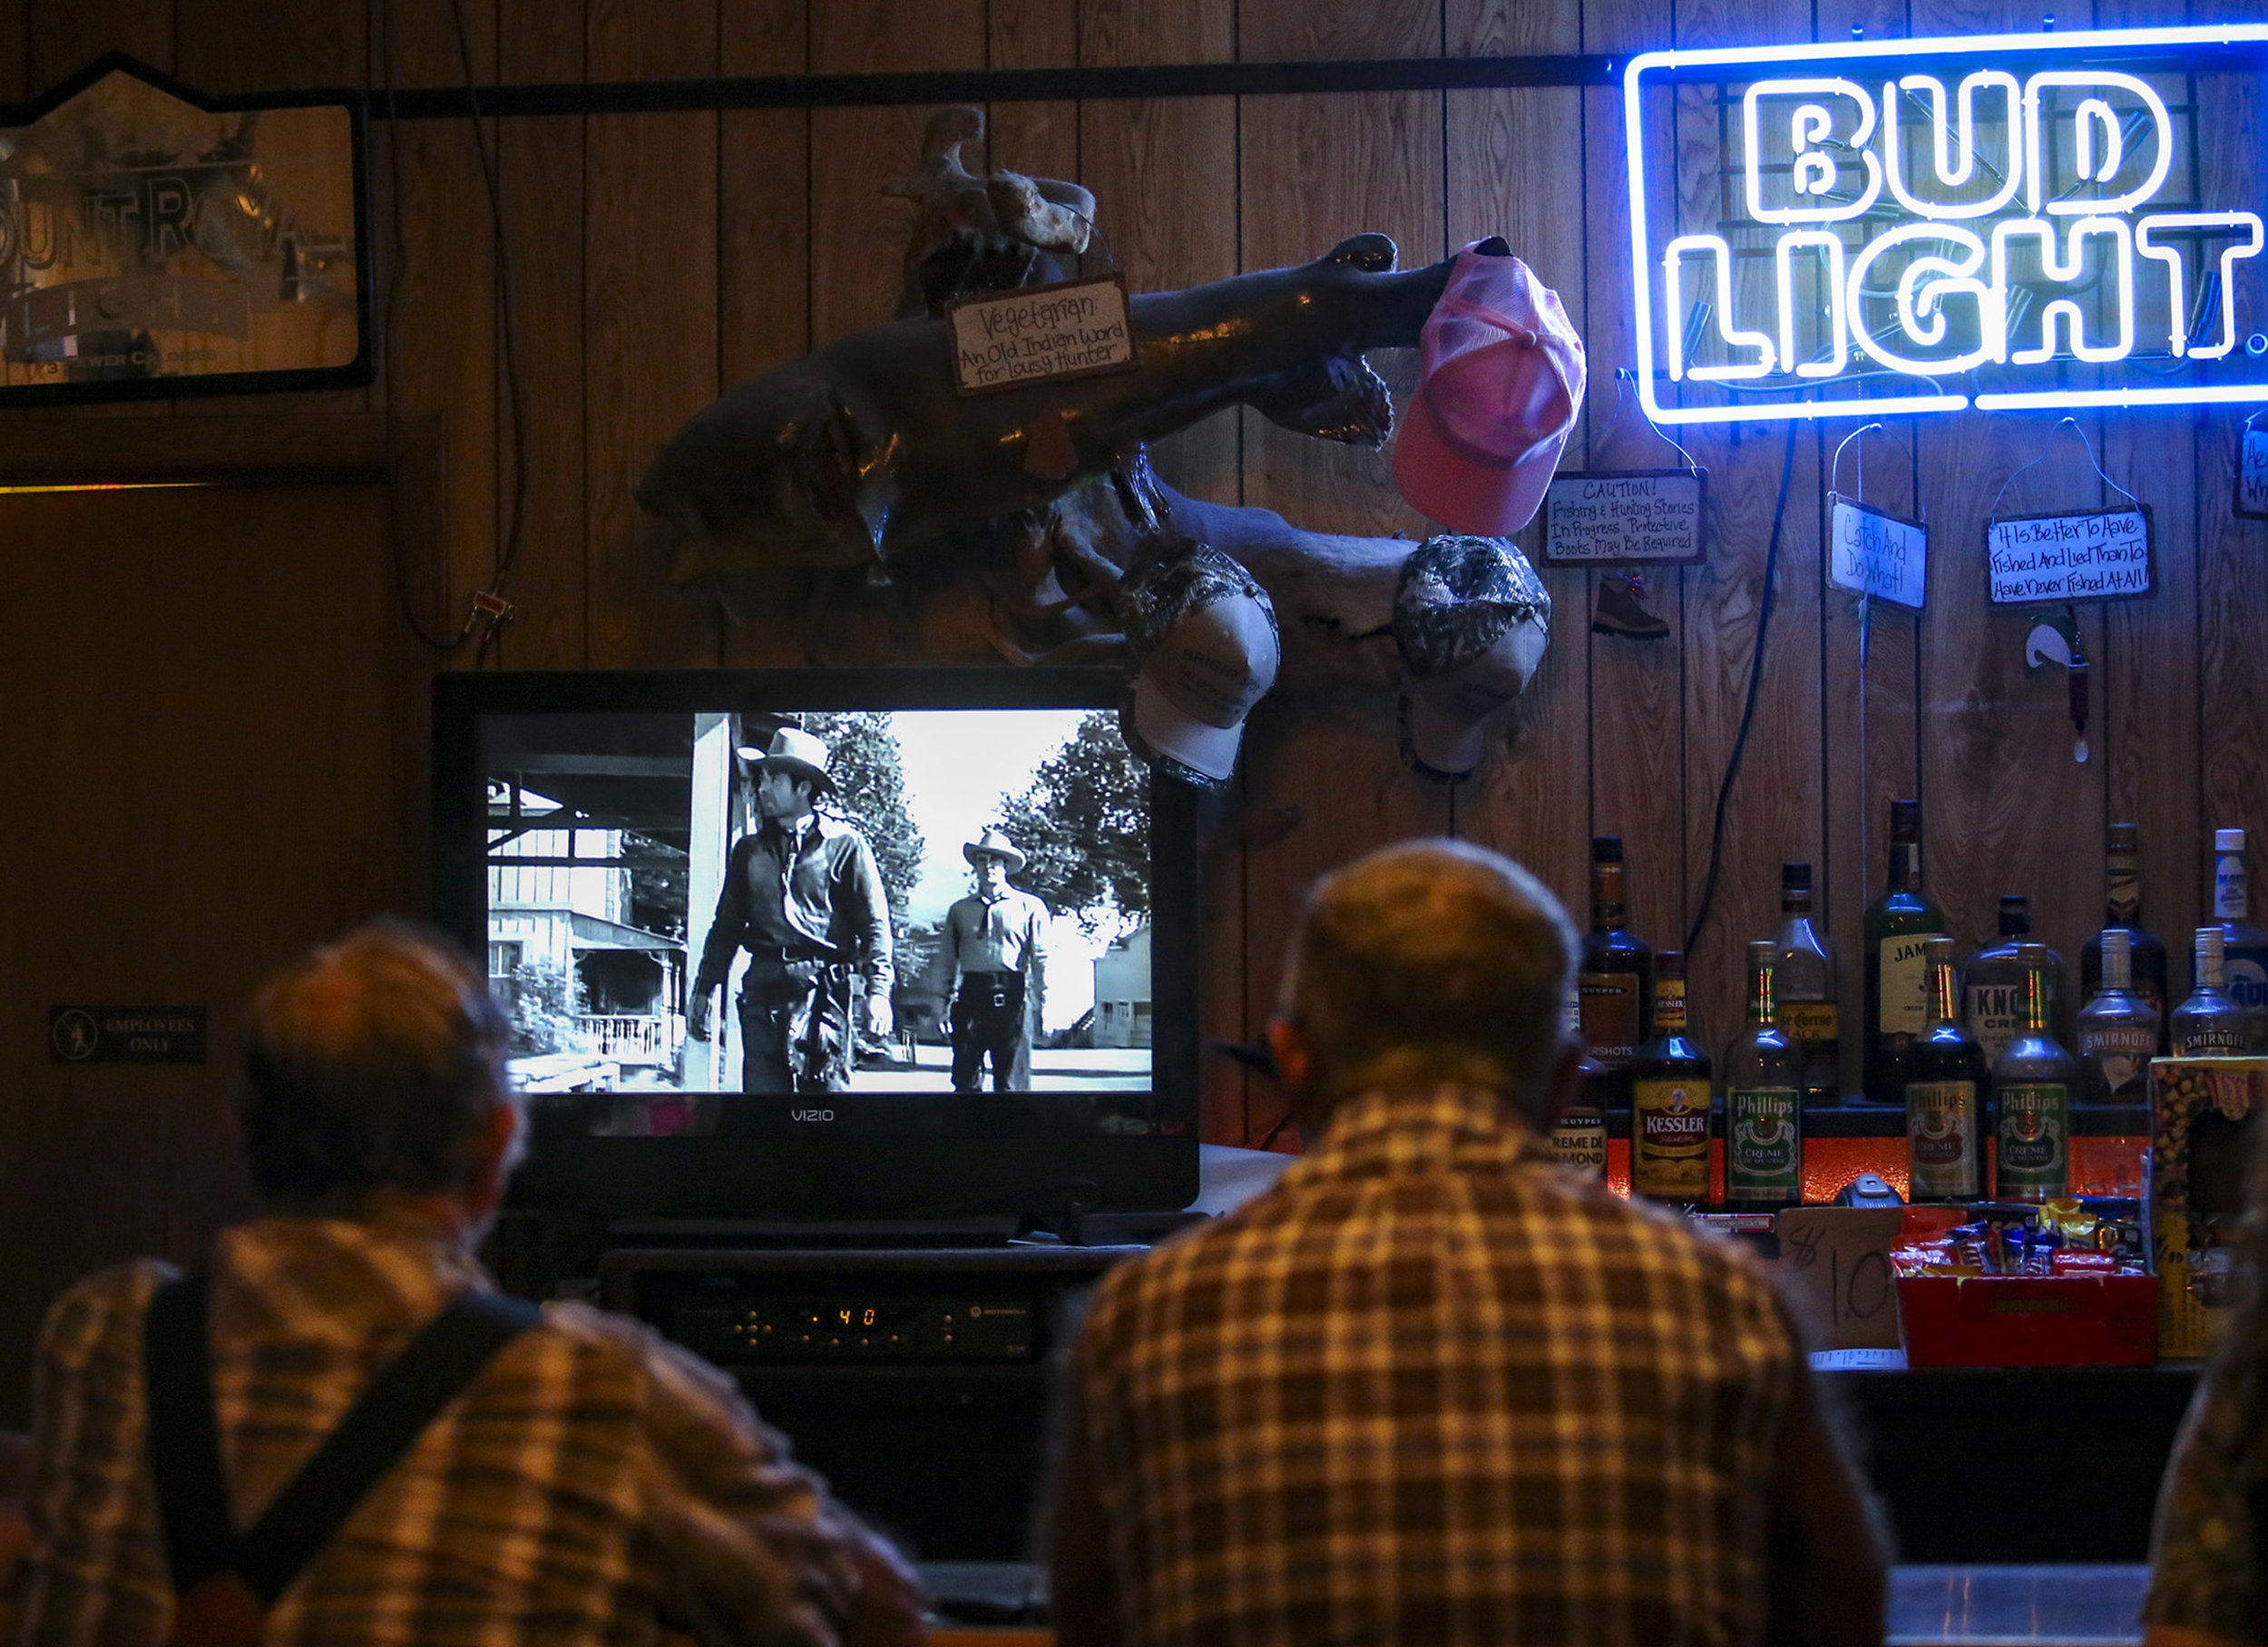 Old westerns play behind the bar at the Bright Spot in De Soto, Wisconsin, Tuesday, June 6, 2017. James Boardman has owned the restaurant since 1979, but it has stood in the same location under the same name since 1933.